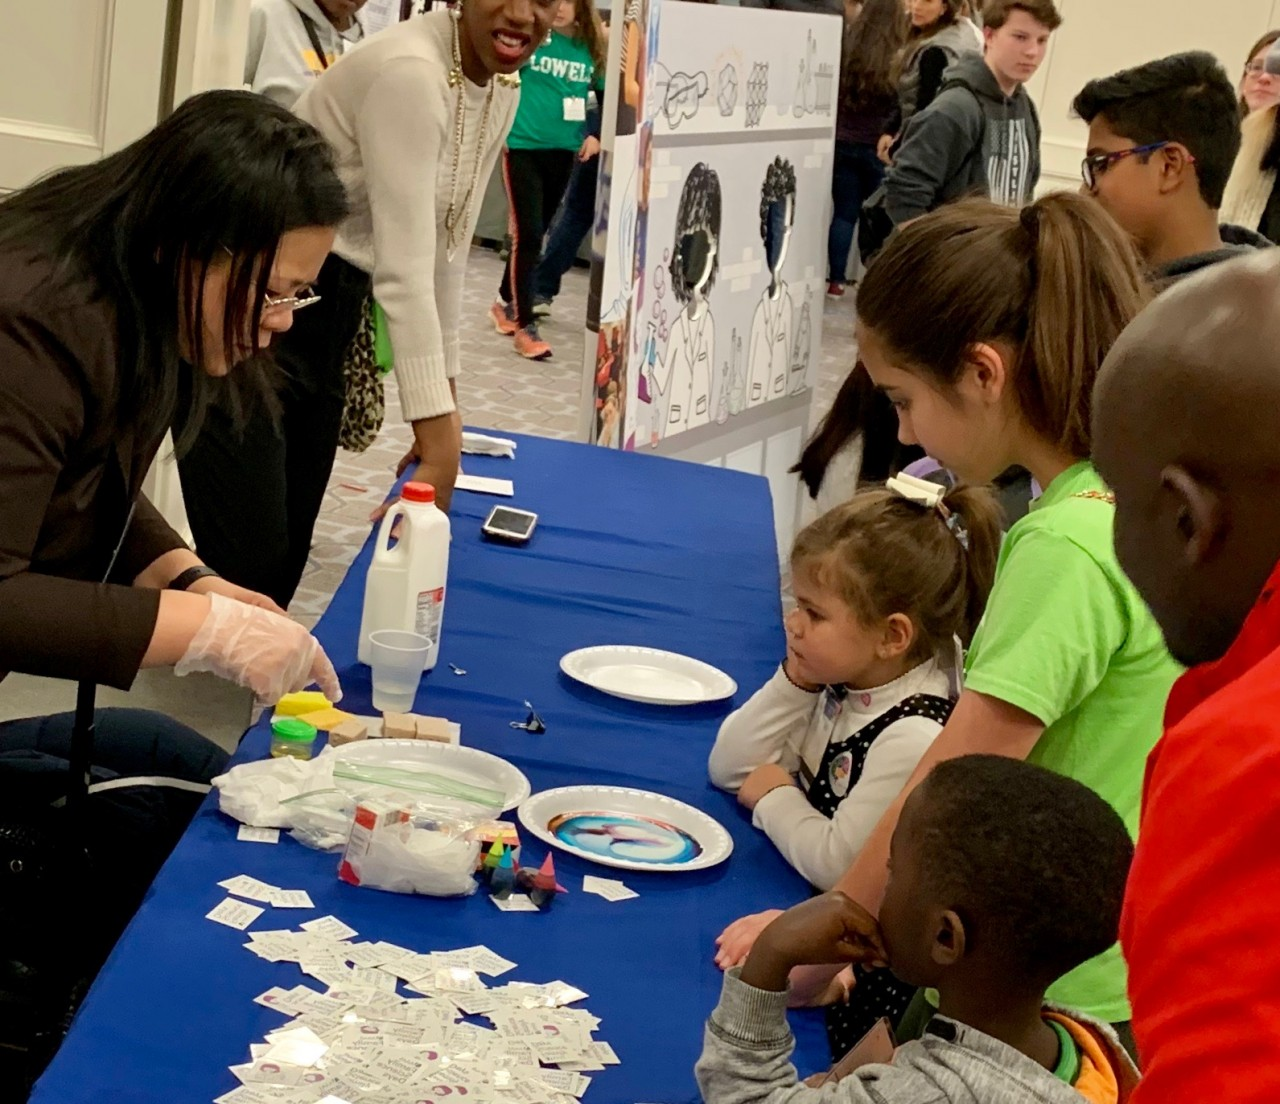 b2ap3_large_Florence-Lu-children-2 Celebrating Invention During the 2019 AAAS Annu... Inventing,licensing –,Invention Ambassadors,AAAS